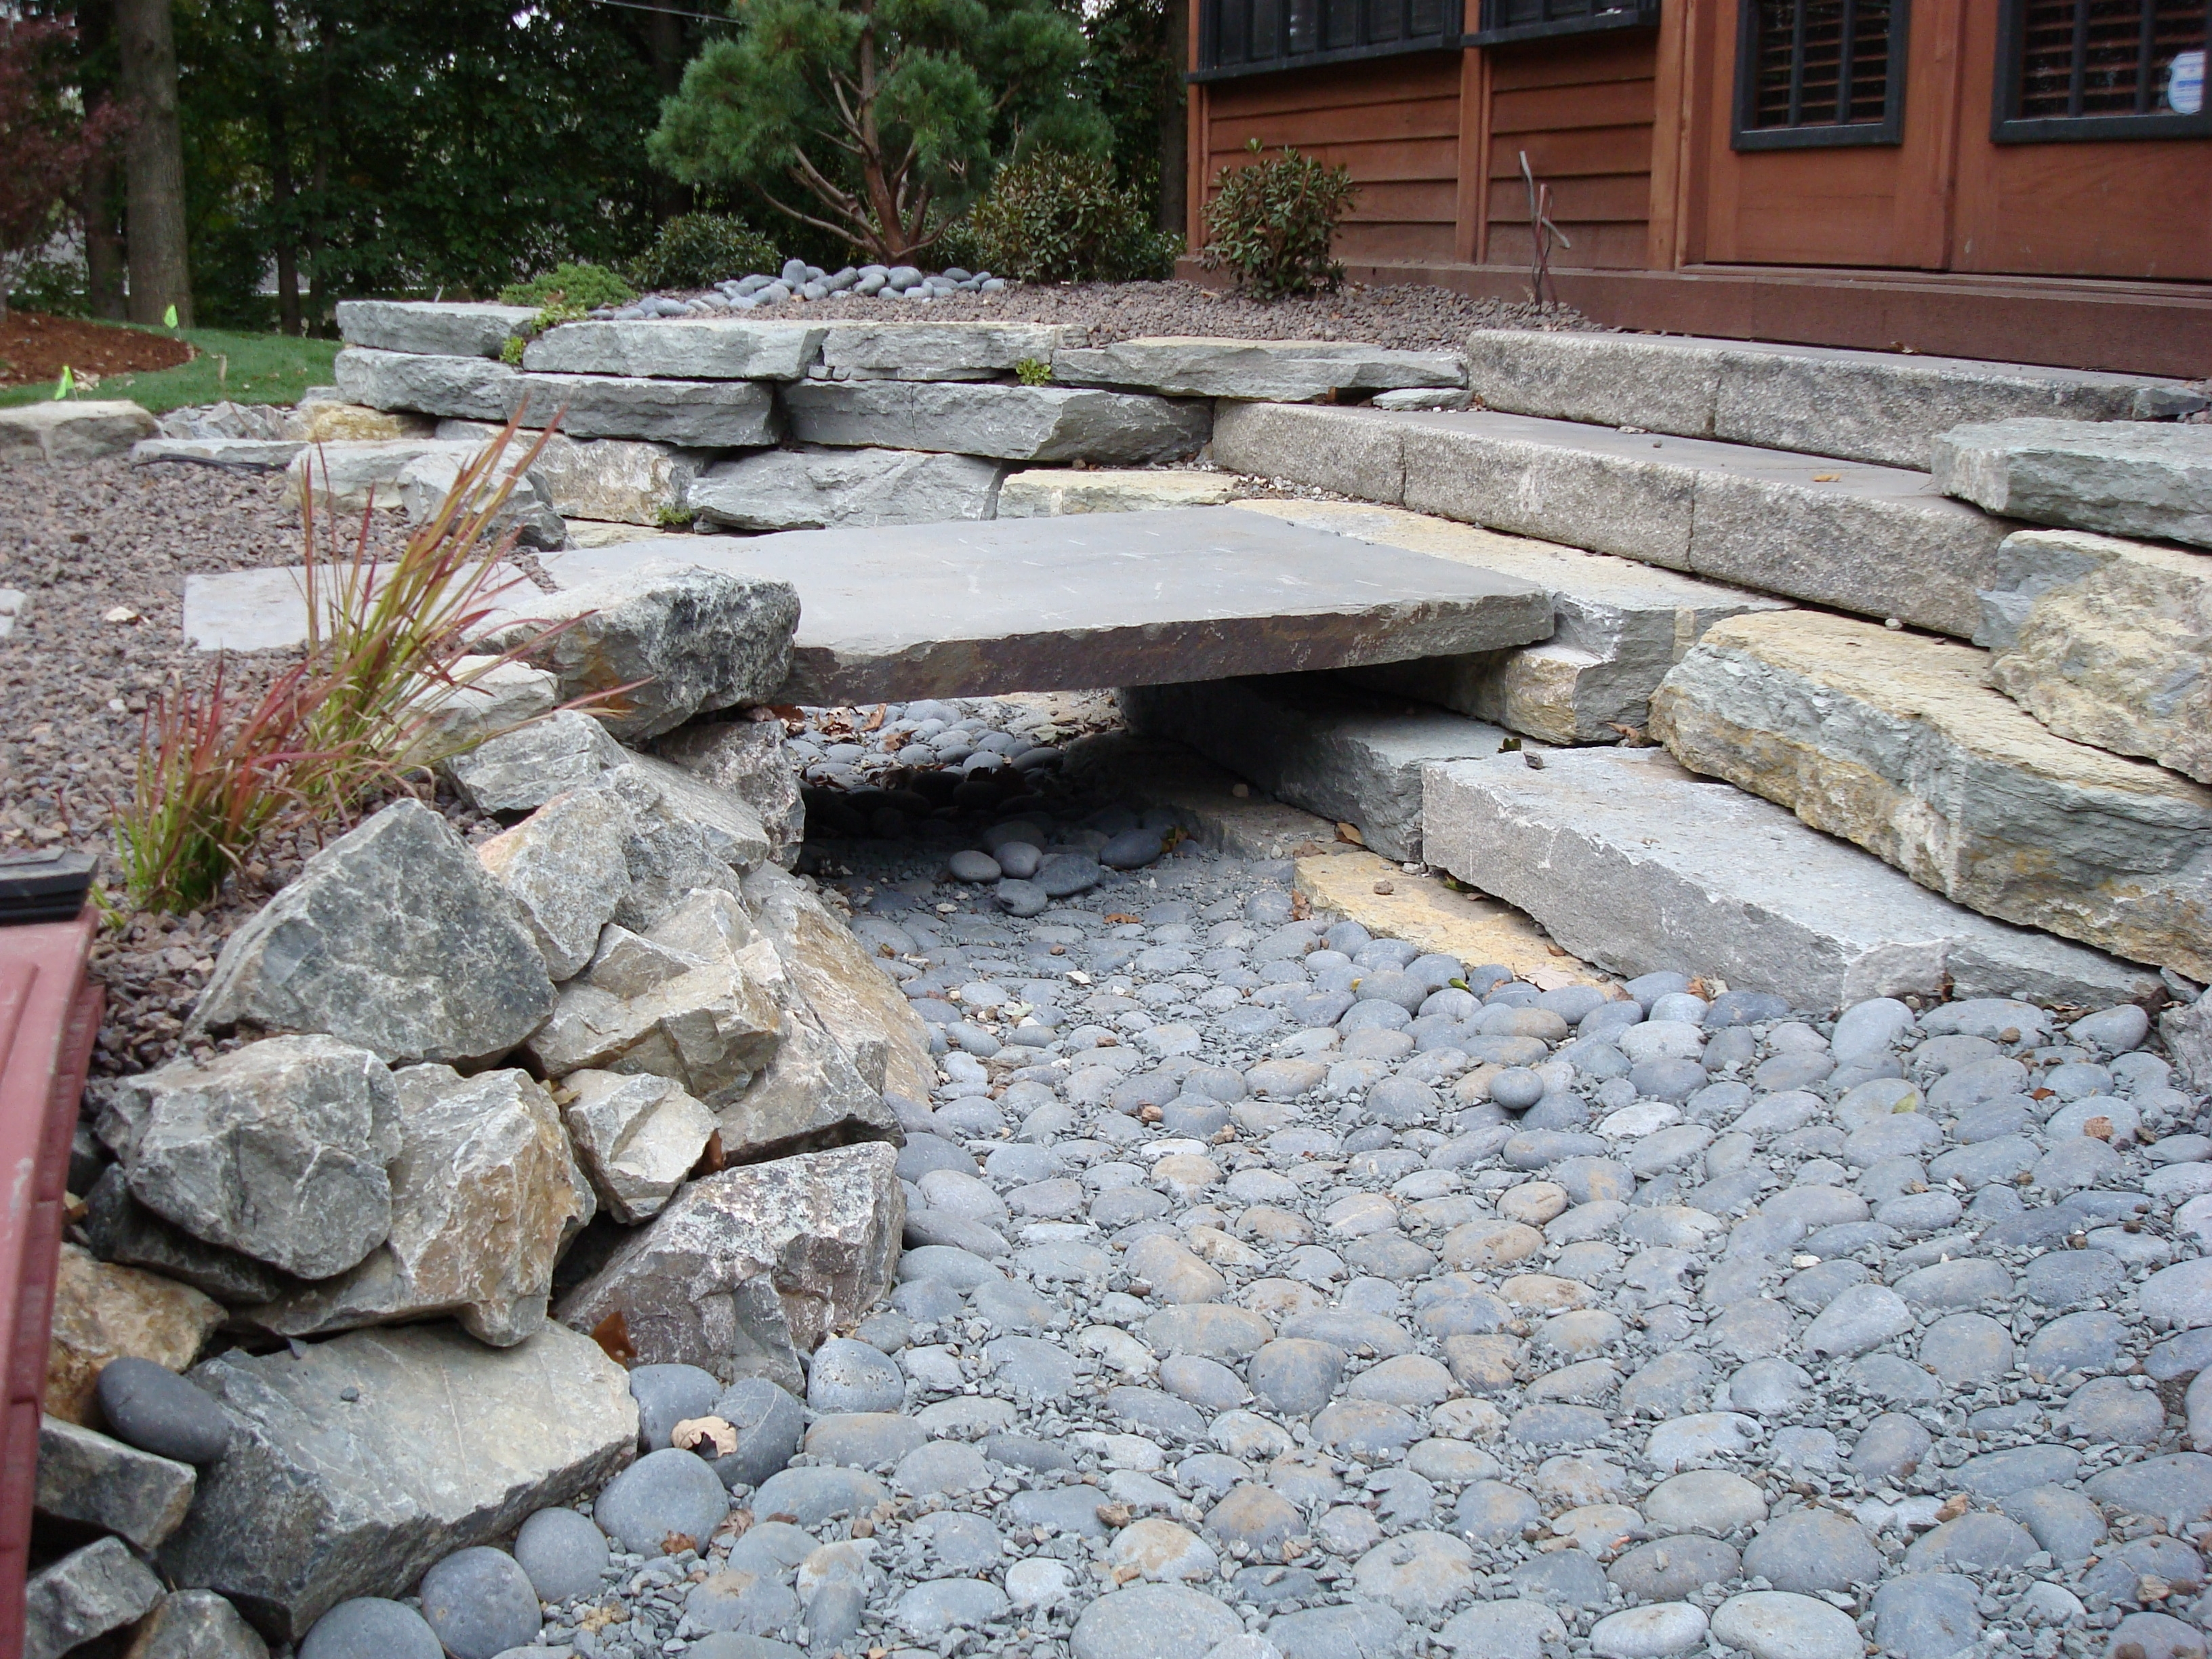 Image of: Dry River Bed Landscaping Ideas Drainage Steve Snedekers Throughout Drainage Ditch Landscaping Ideas Natural Drainage Ditch Landscaping Ideas